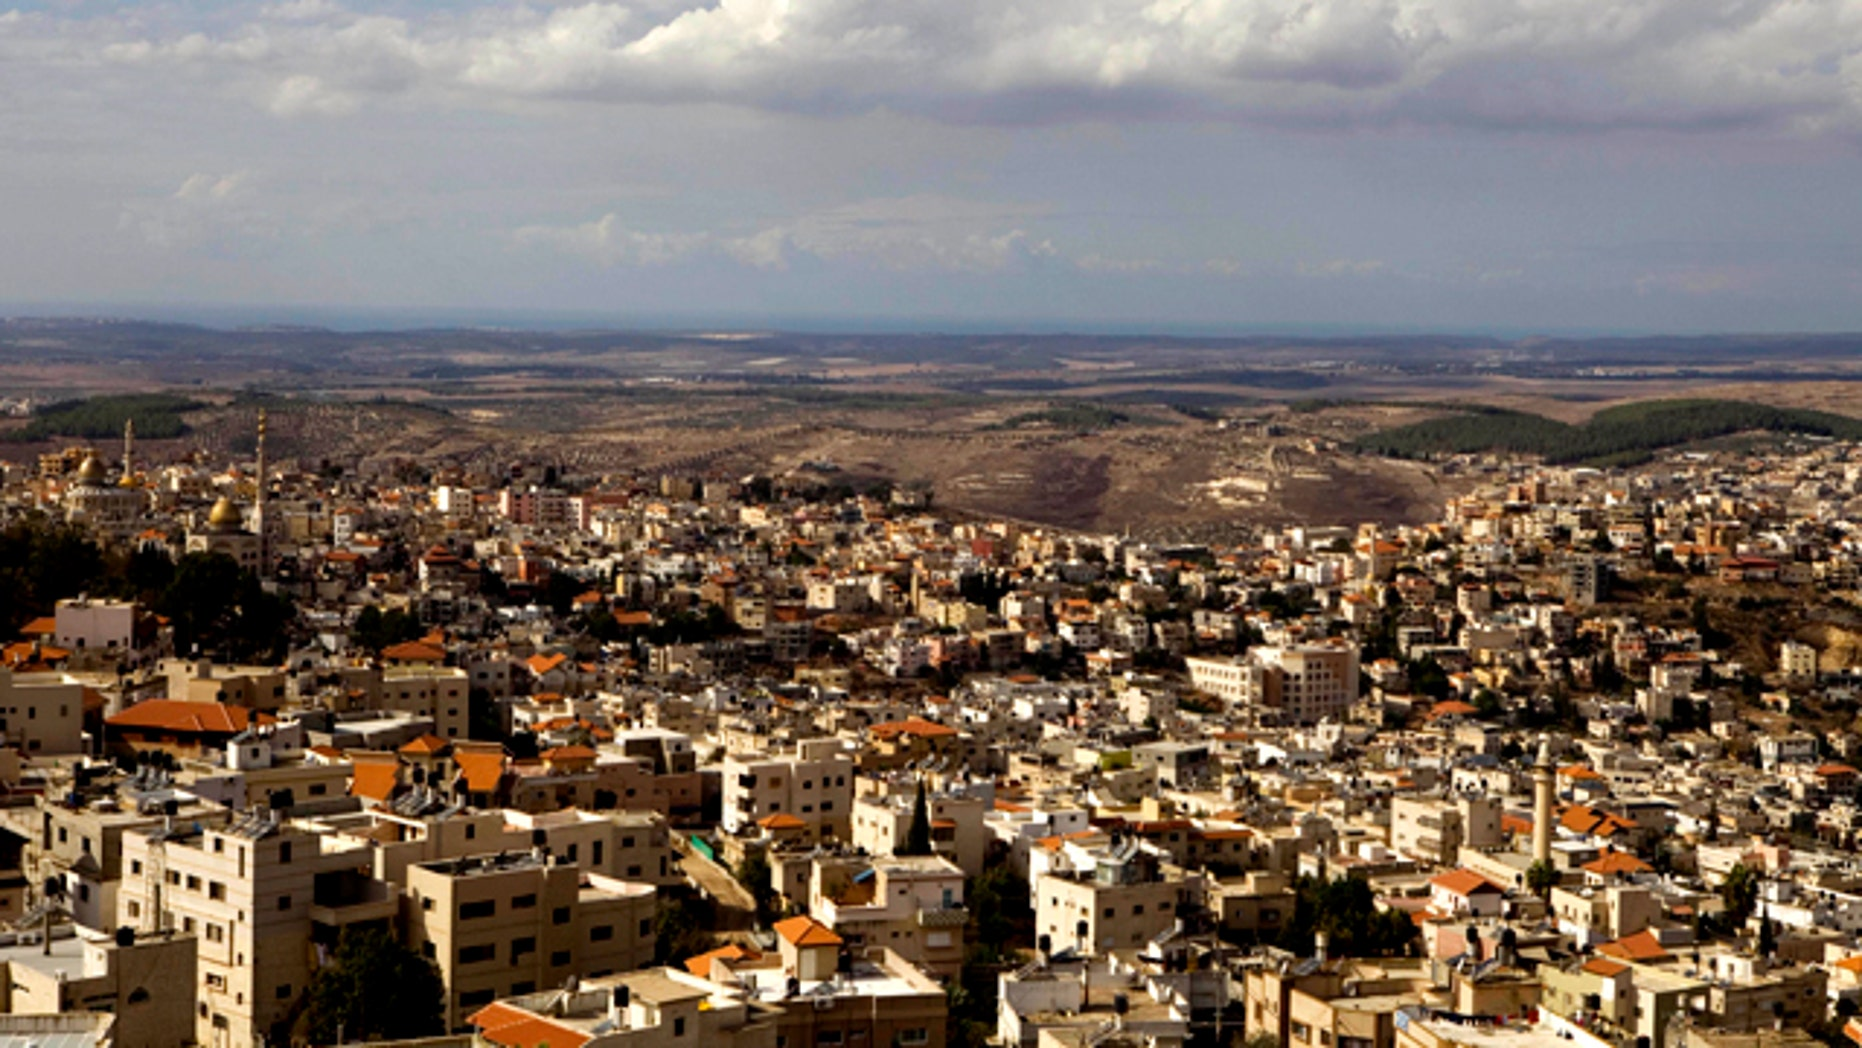 In this photo taken Sunday, Oct. 31, 2010, a general view of the northern Israeli town of Umm el-Fahm. Relations between Israel's dominant Jews and minority Arab citizens have never been cordial. But they now appear to be approaching a particularly low point, and activists warn violence could follow.